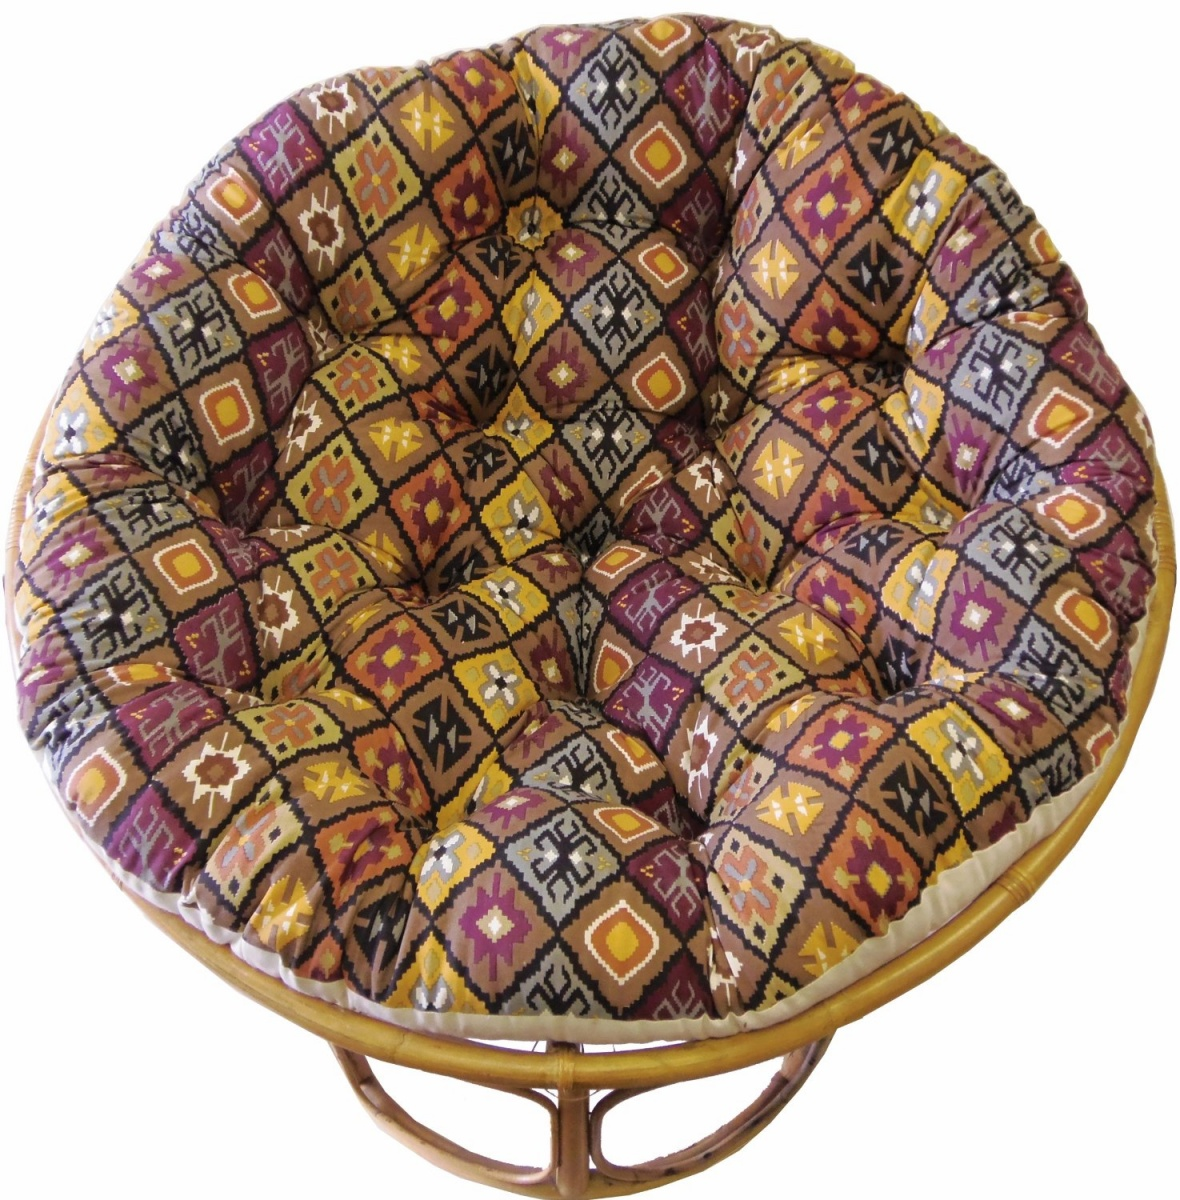 Awesome Rattan Outdoor Papasan Chair With Colorful Tufted Cushion Seat In Multicolor For Charming Furniture Ideas